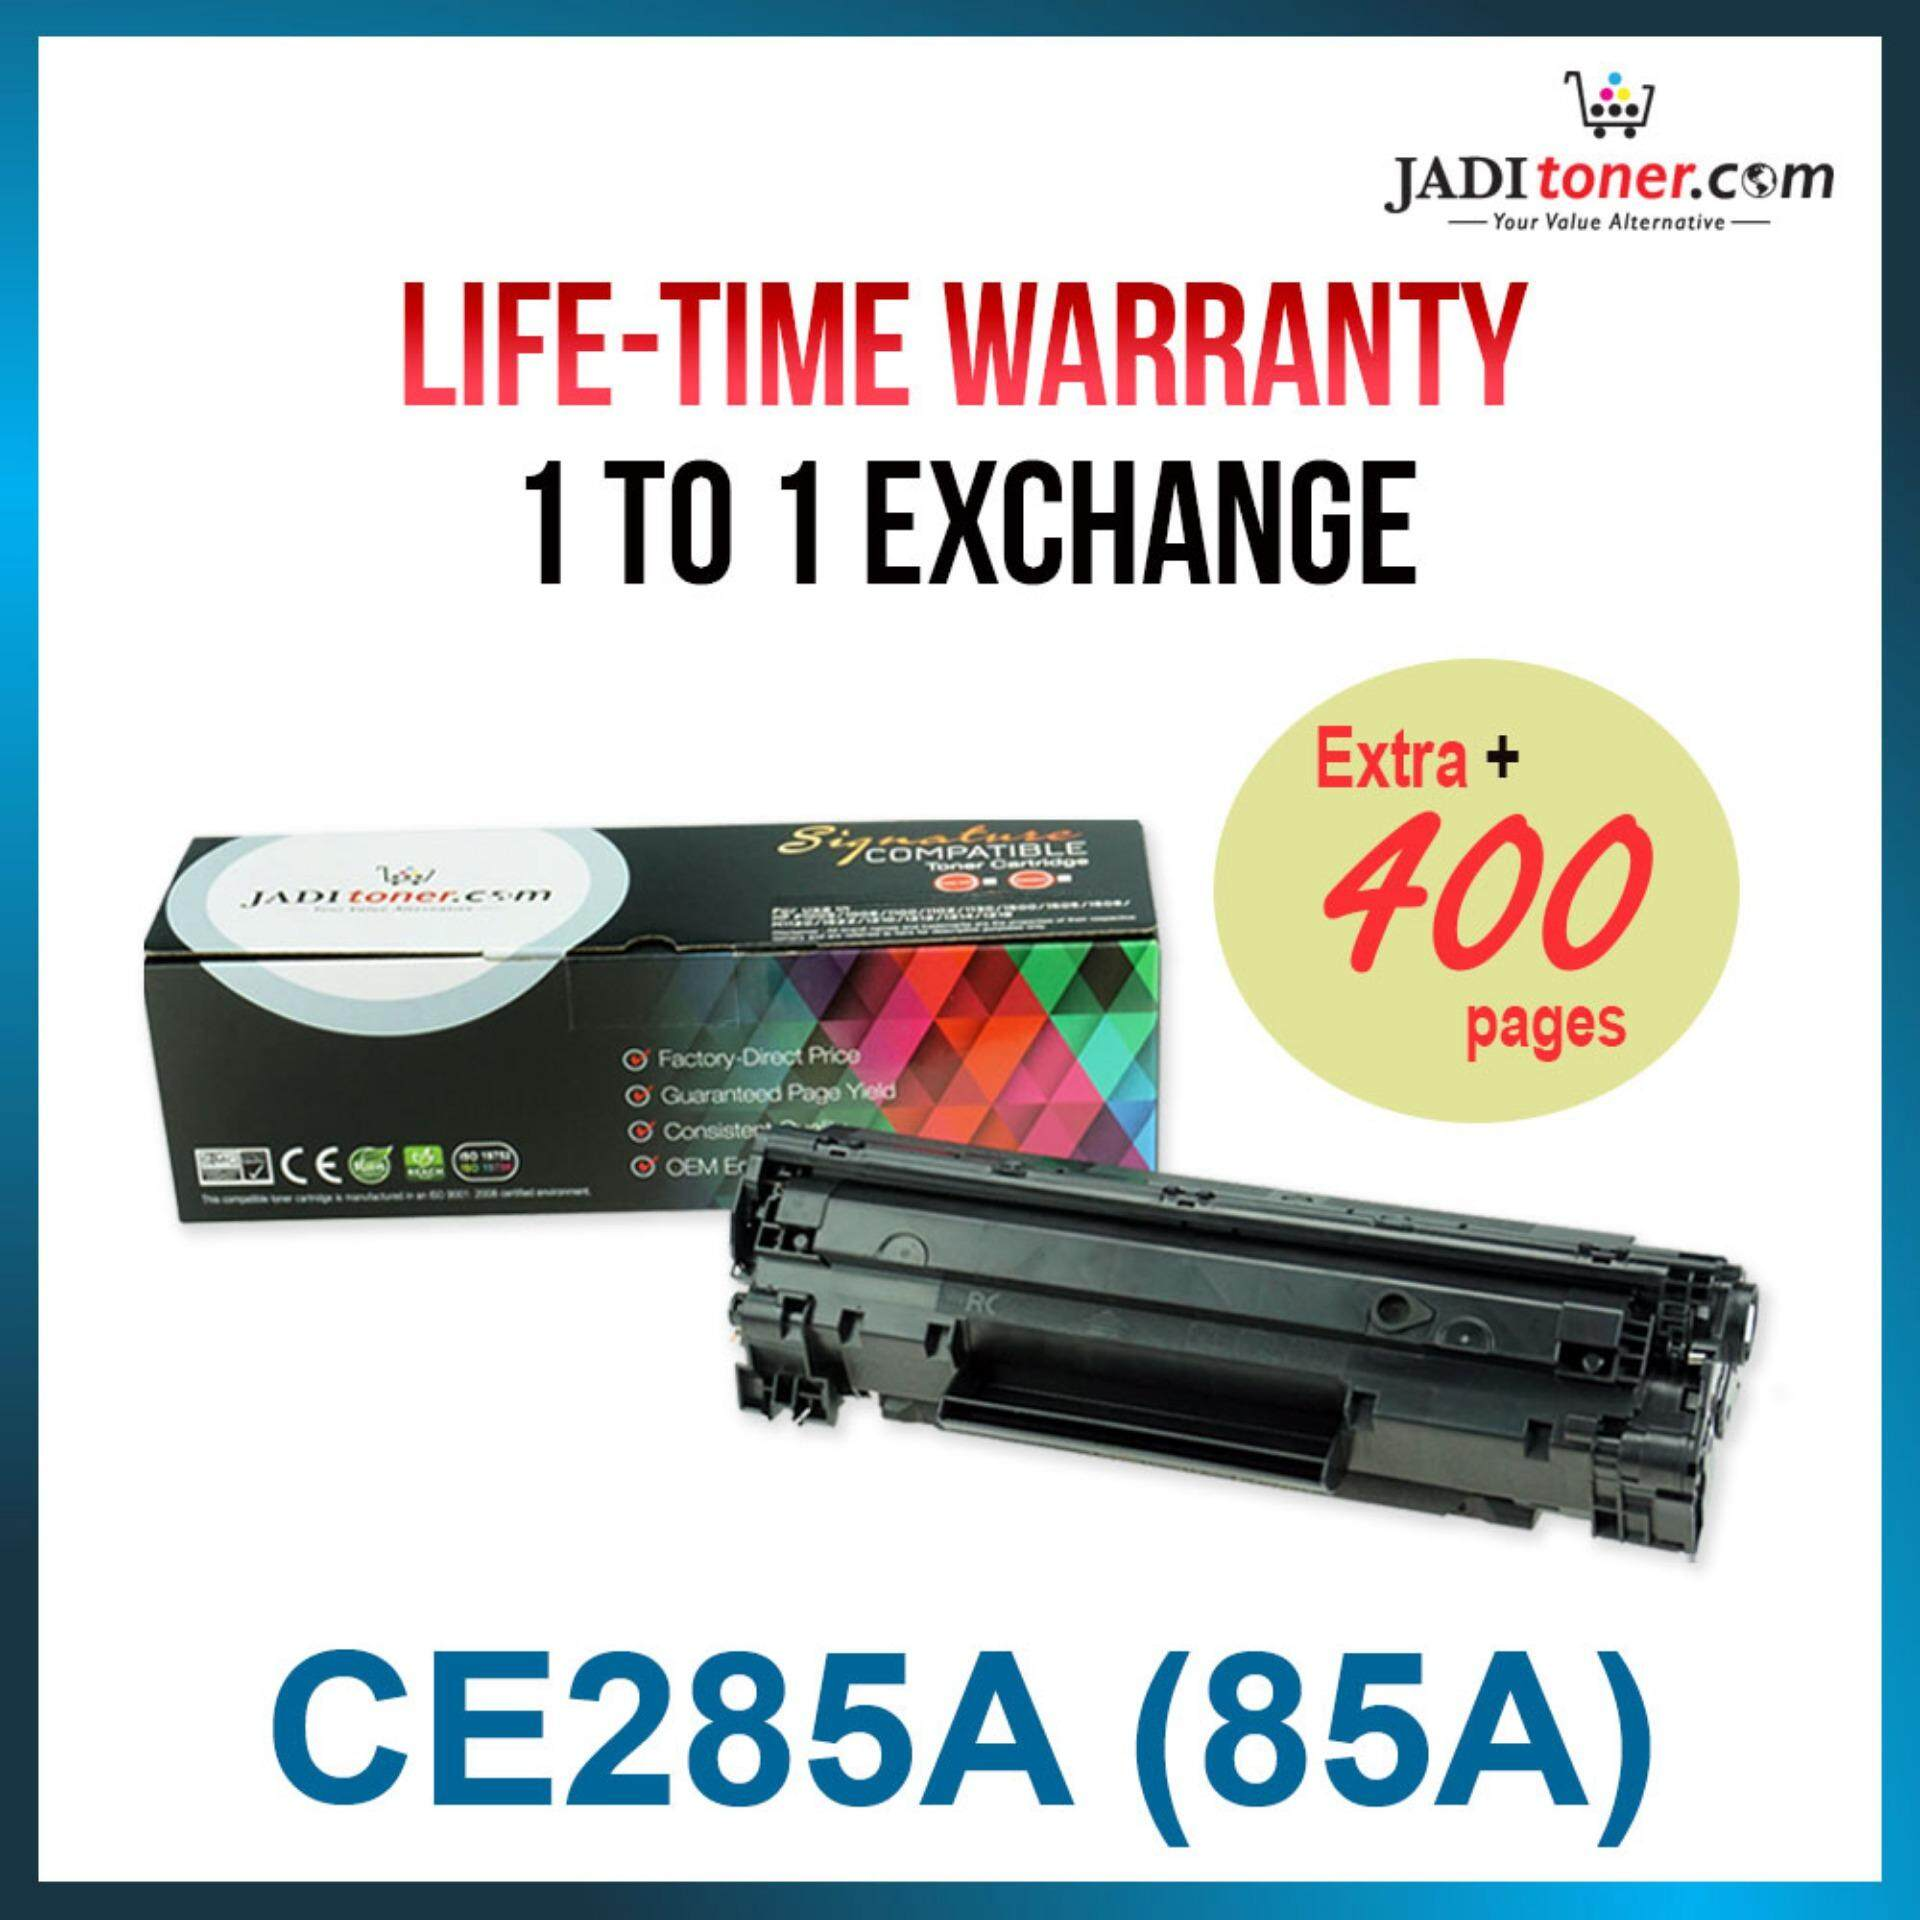 Printers Accessories Buy At Best Price In Tinta Hp 680 Colour Ink Cartridge Original Compatible Ce285a Laser Toner For Use Ce285 285a 85a Laserjet P1005 P1006